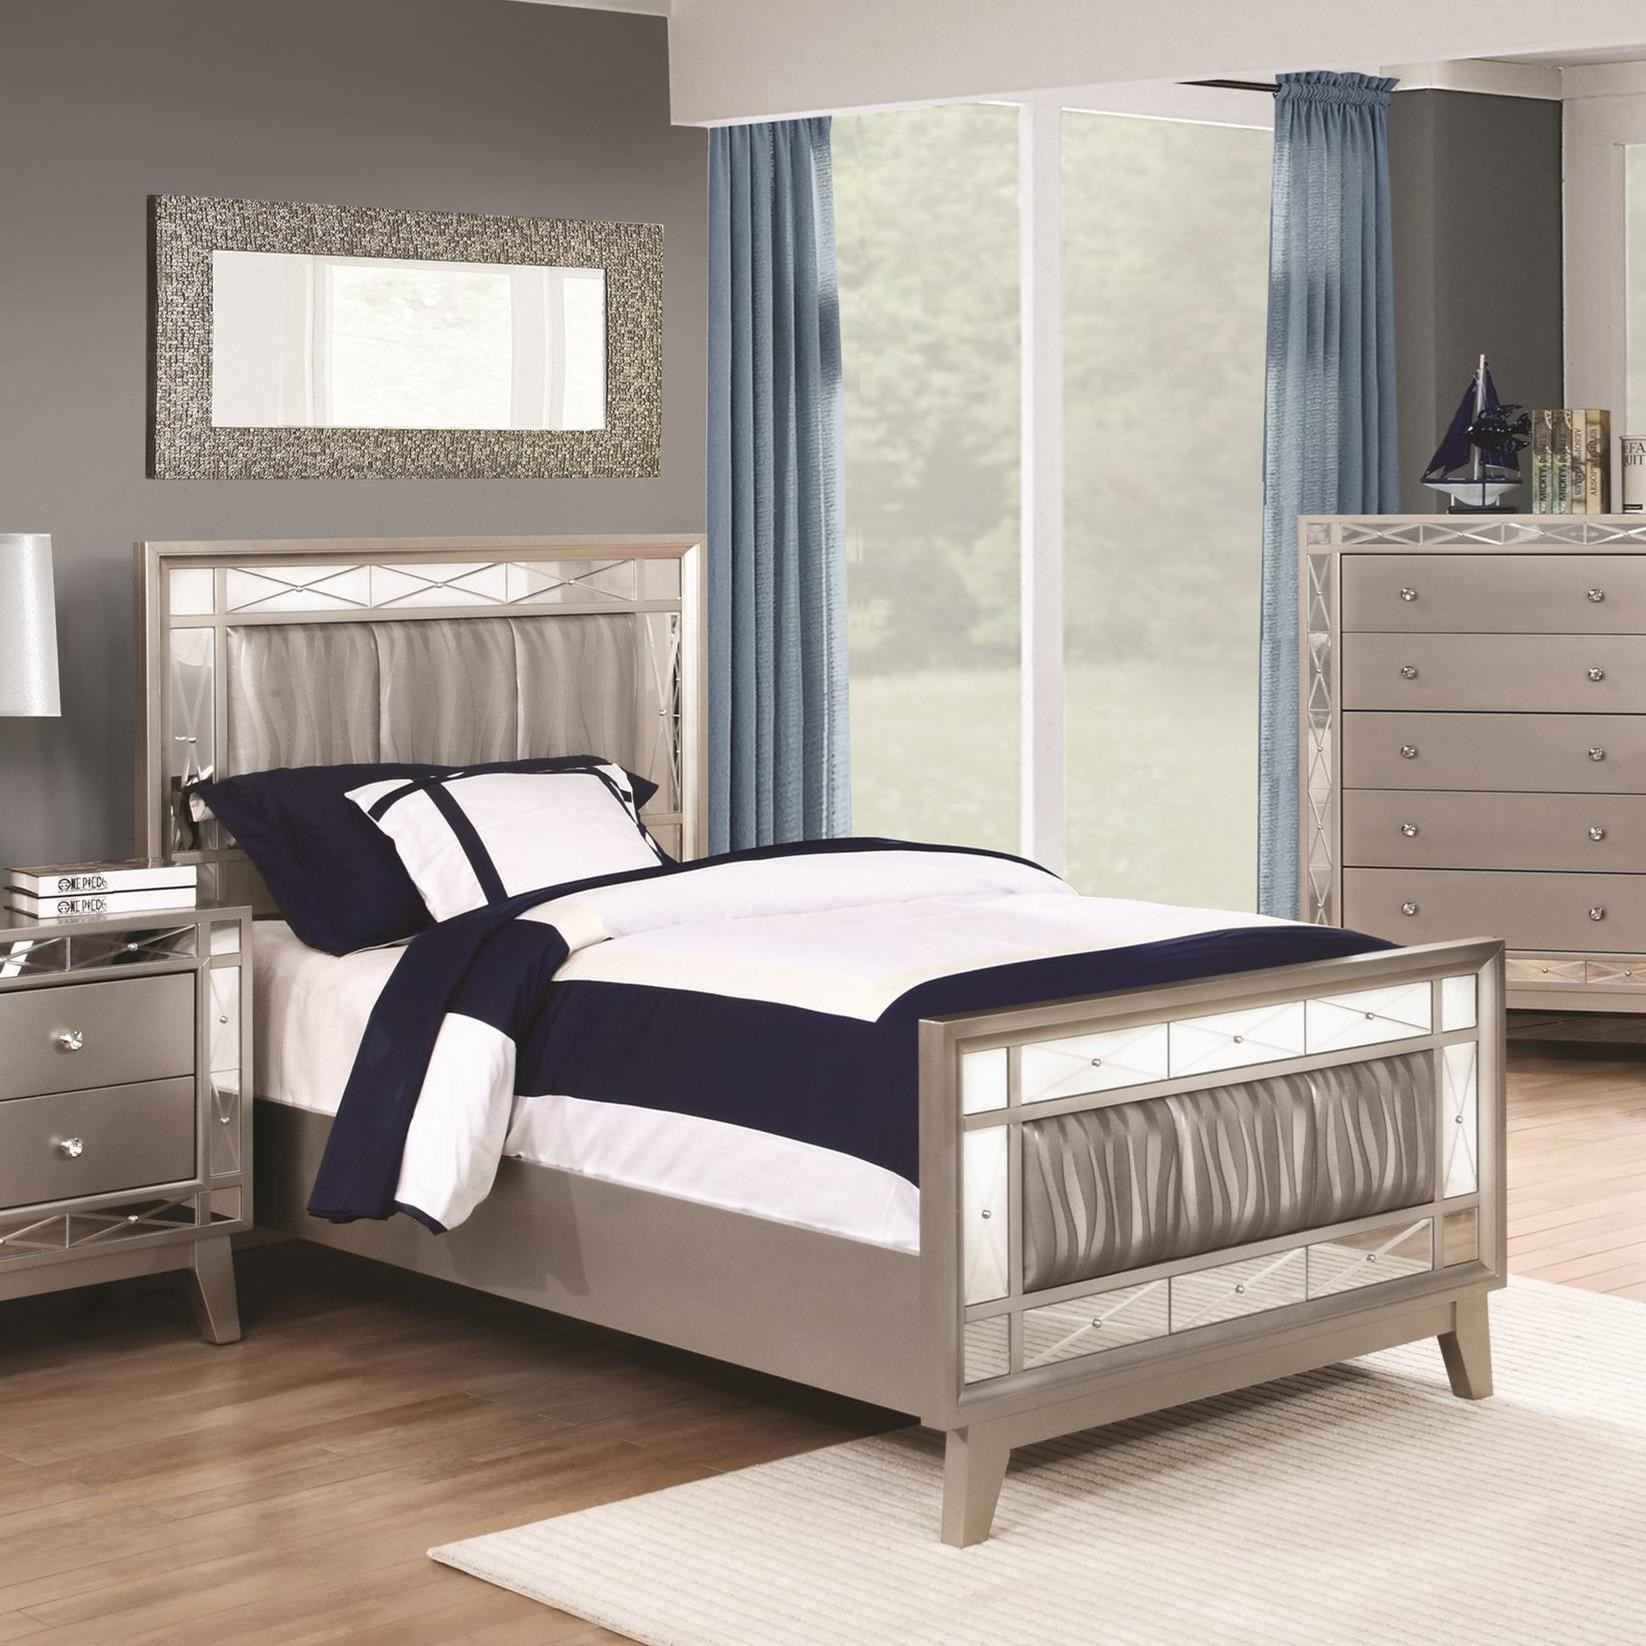 Leighton Twin Bed by Coaster at Northeast Factory Direct